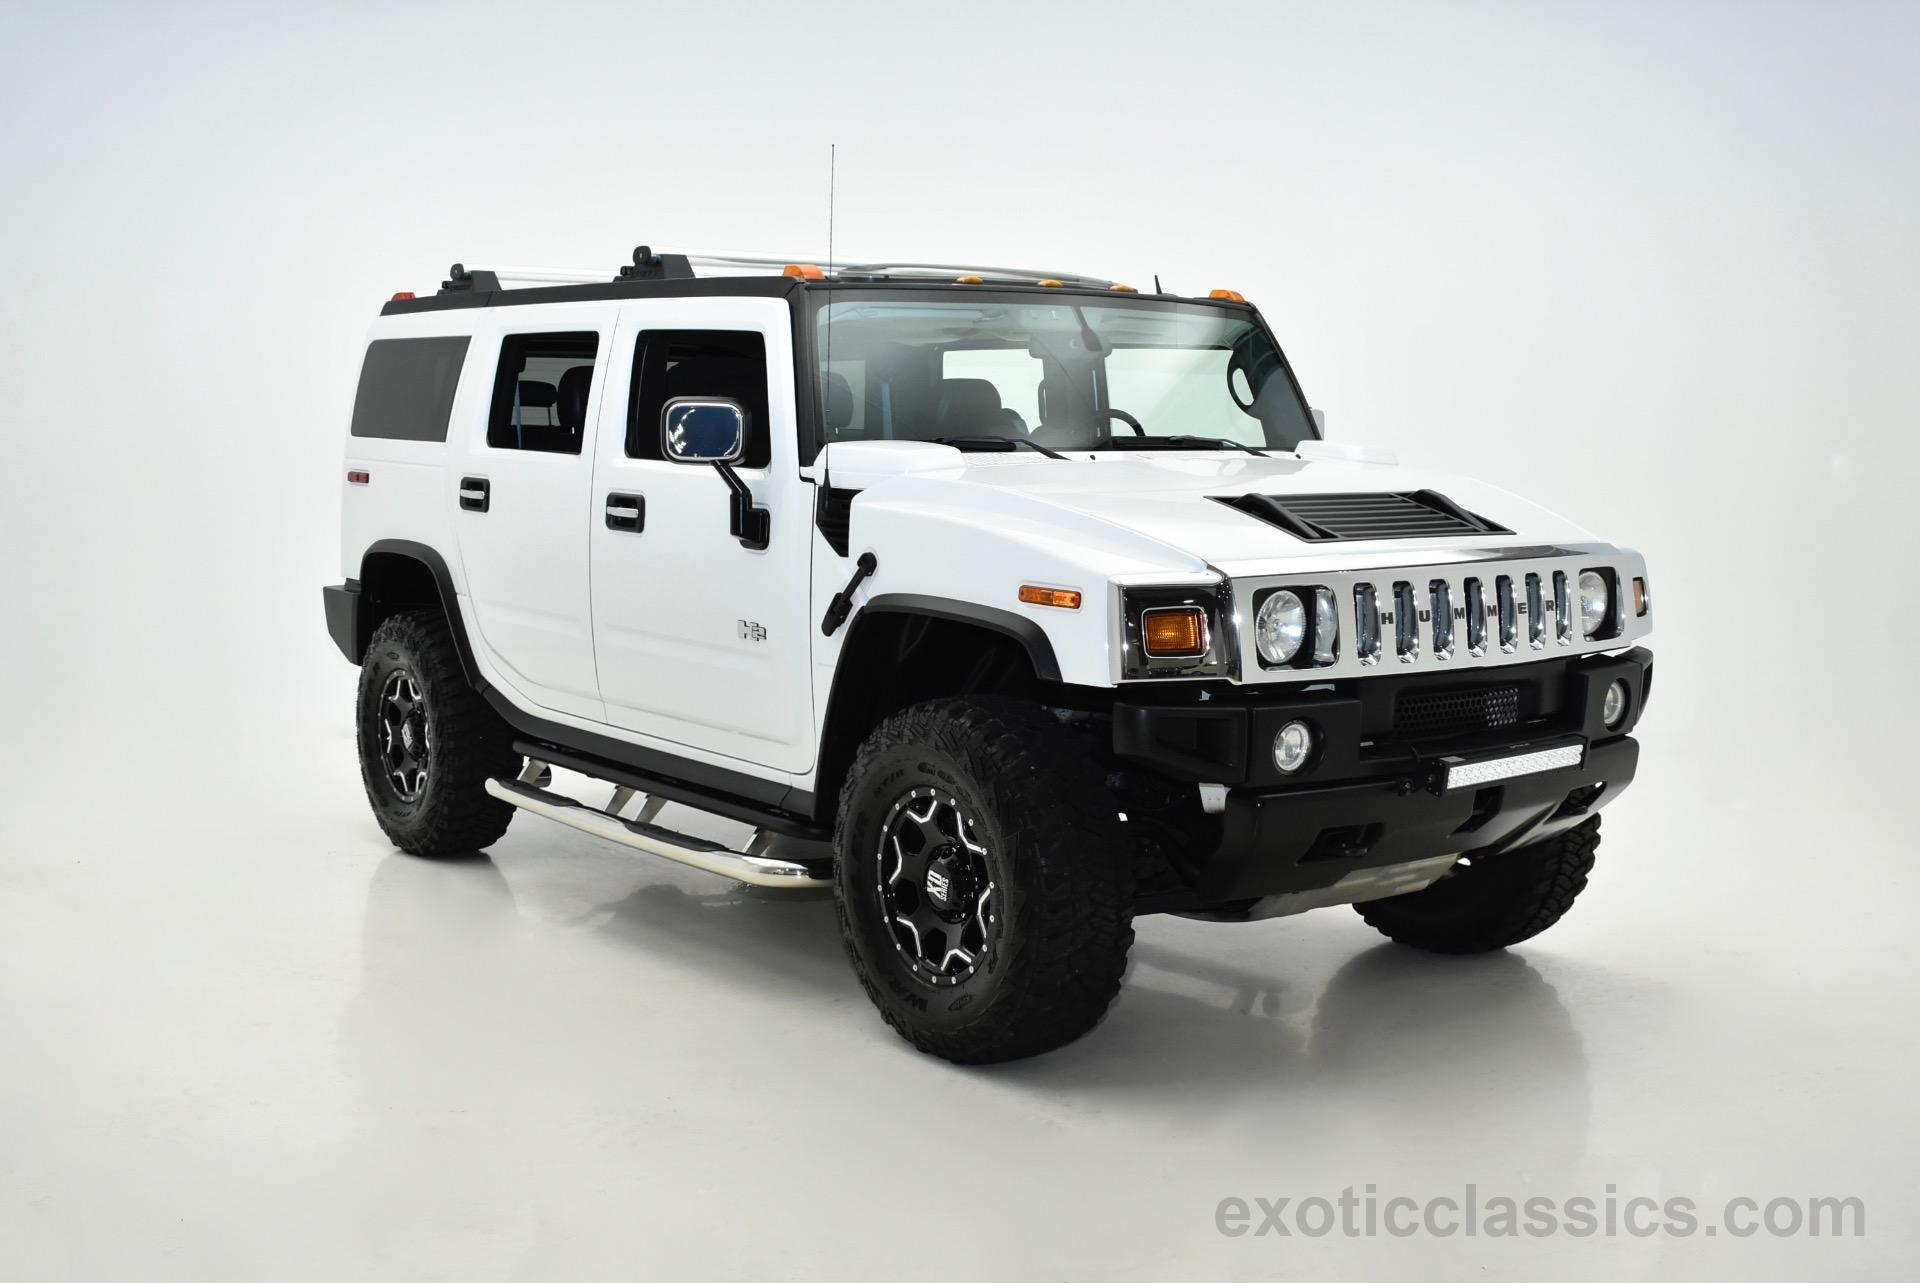 2005 HUMMER H2 Lux Series Exotic and Classic Car Dealership